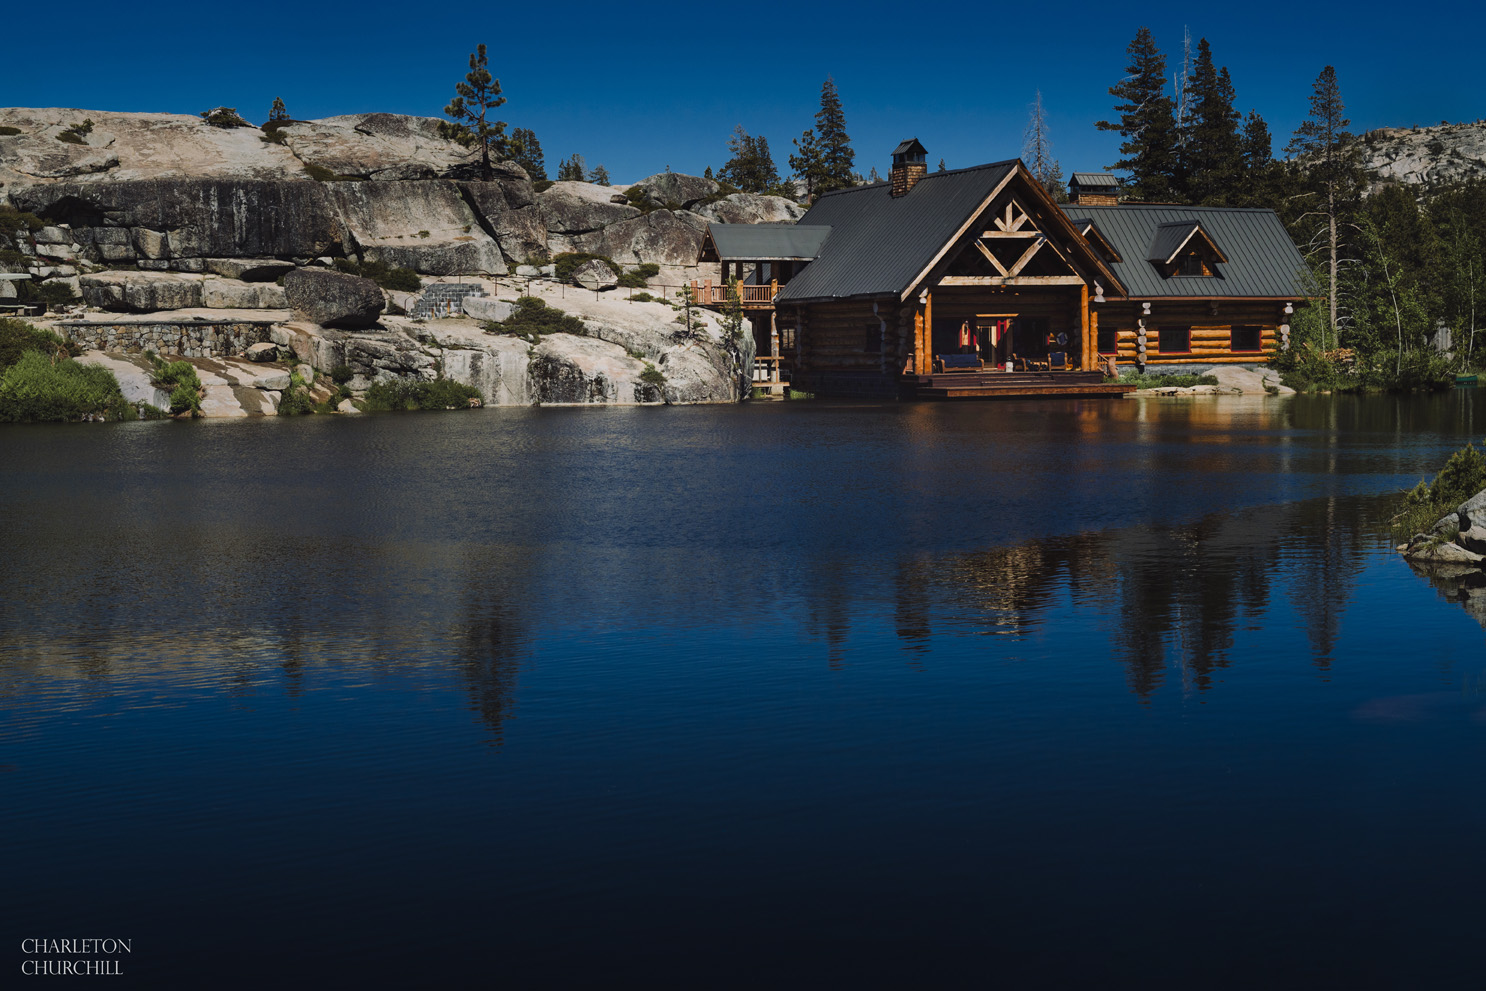 the lodge at kirkwood The Hideout on the private lake surrounding national forest land